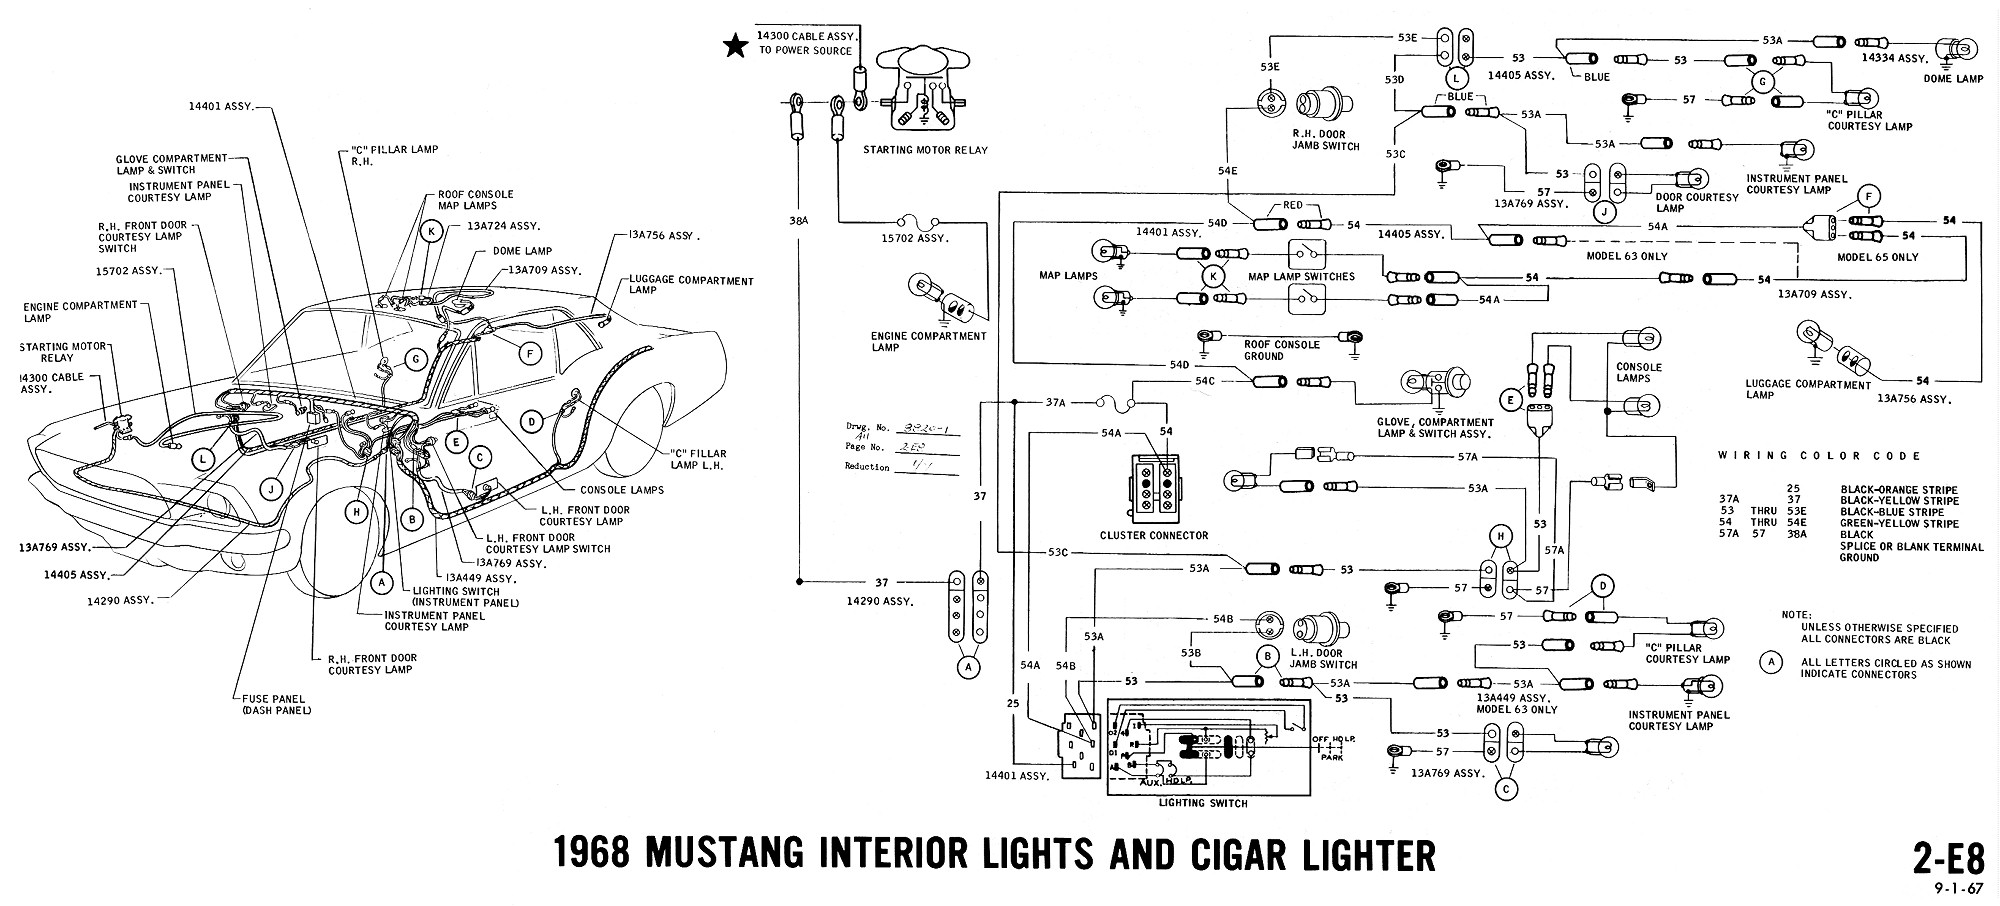 1968 Mustang Wiring Diagram Vacuum Schematics on 1966 mustang alternator wiring diagram